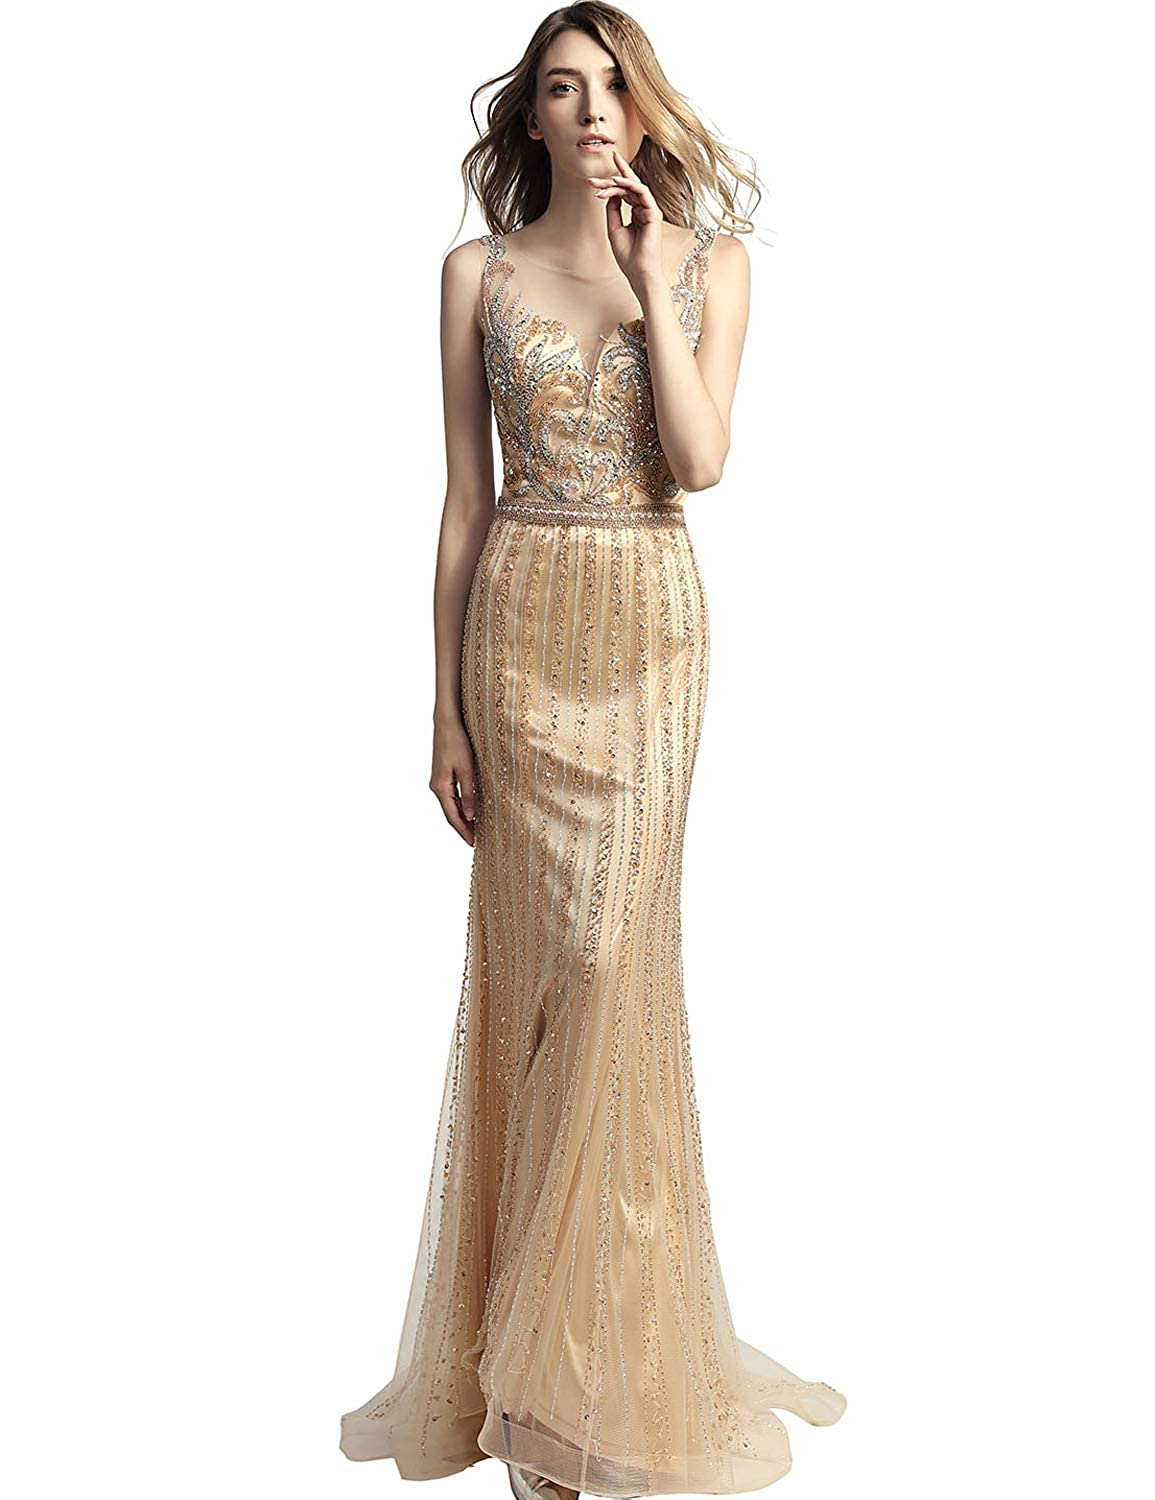 468champagne Sarahbridal Women's Tulle HiLow Beading Prom Dresses Evening Homecoming Cocktail Gowns